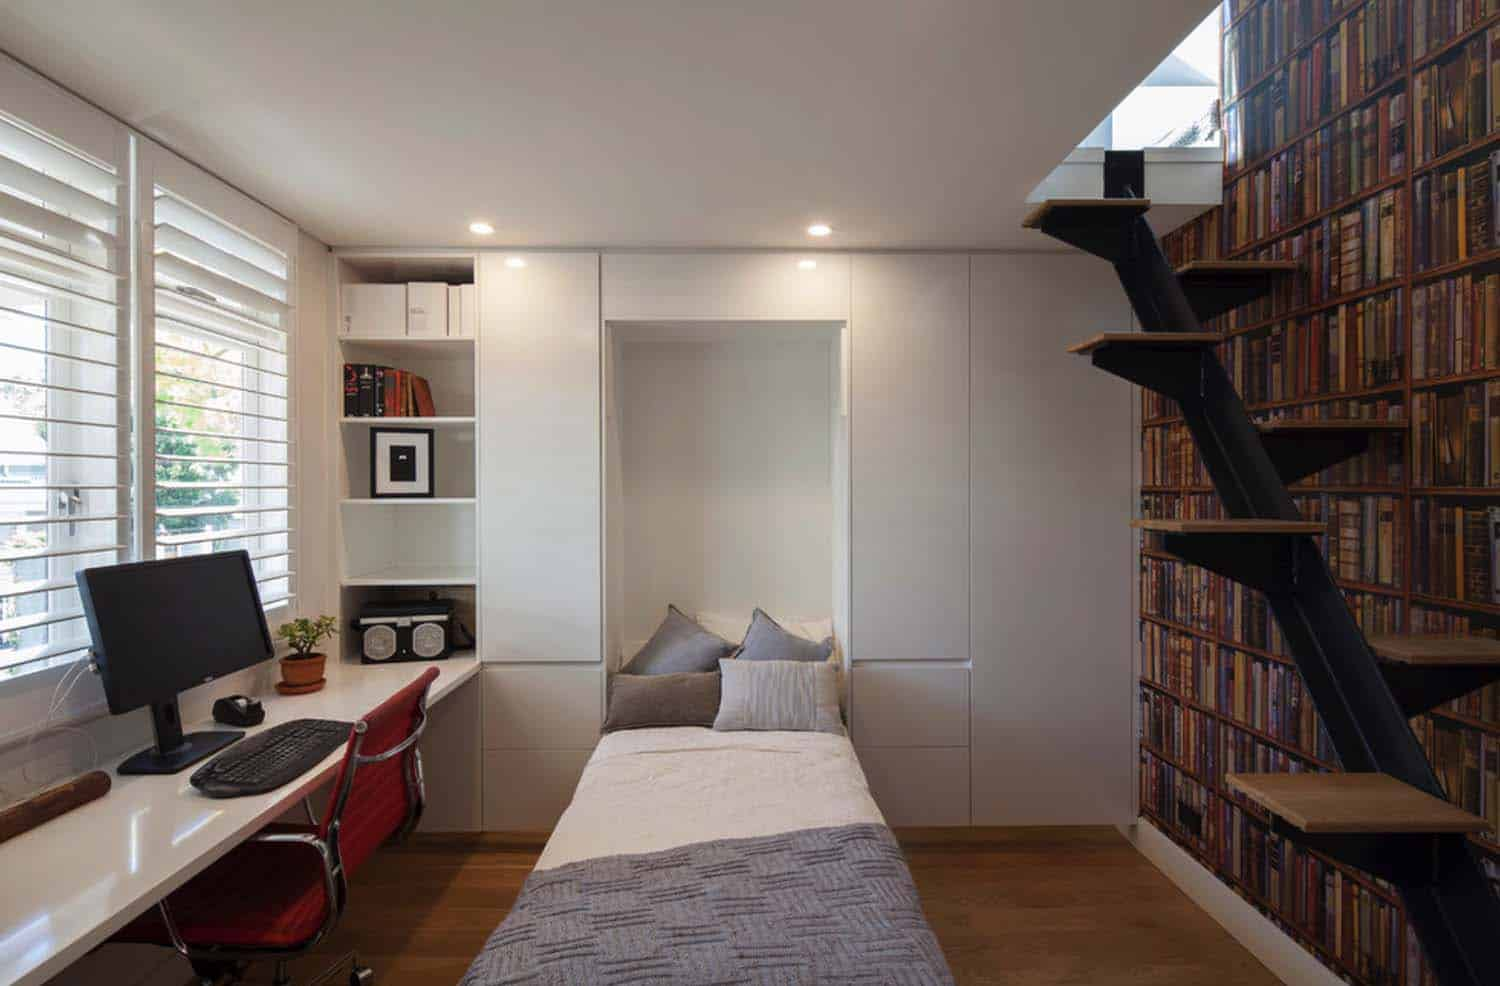 Office in Bedroom Ideas-15-1 Kindesign